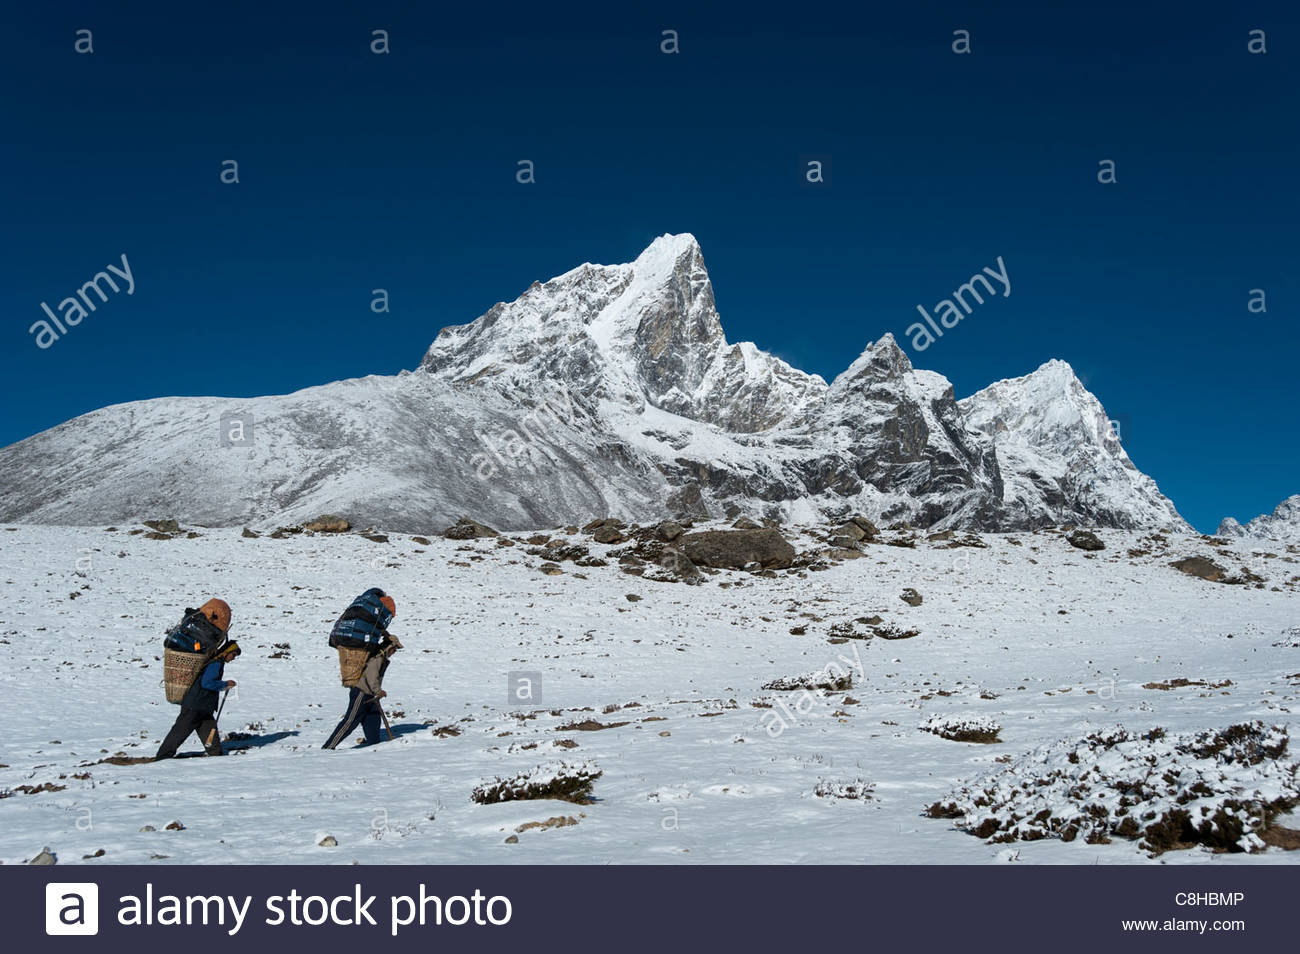 Porters make their way to base camp with views of Taboche behind - Stock Image